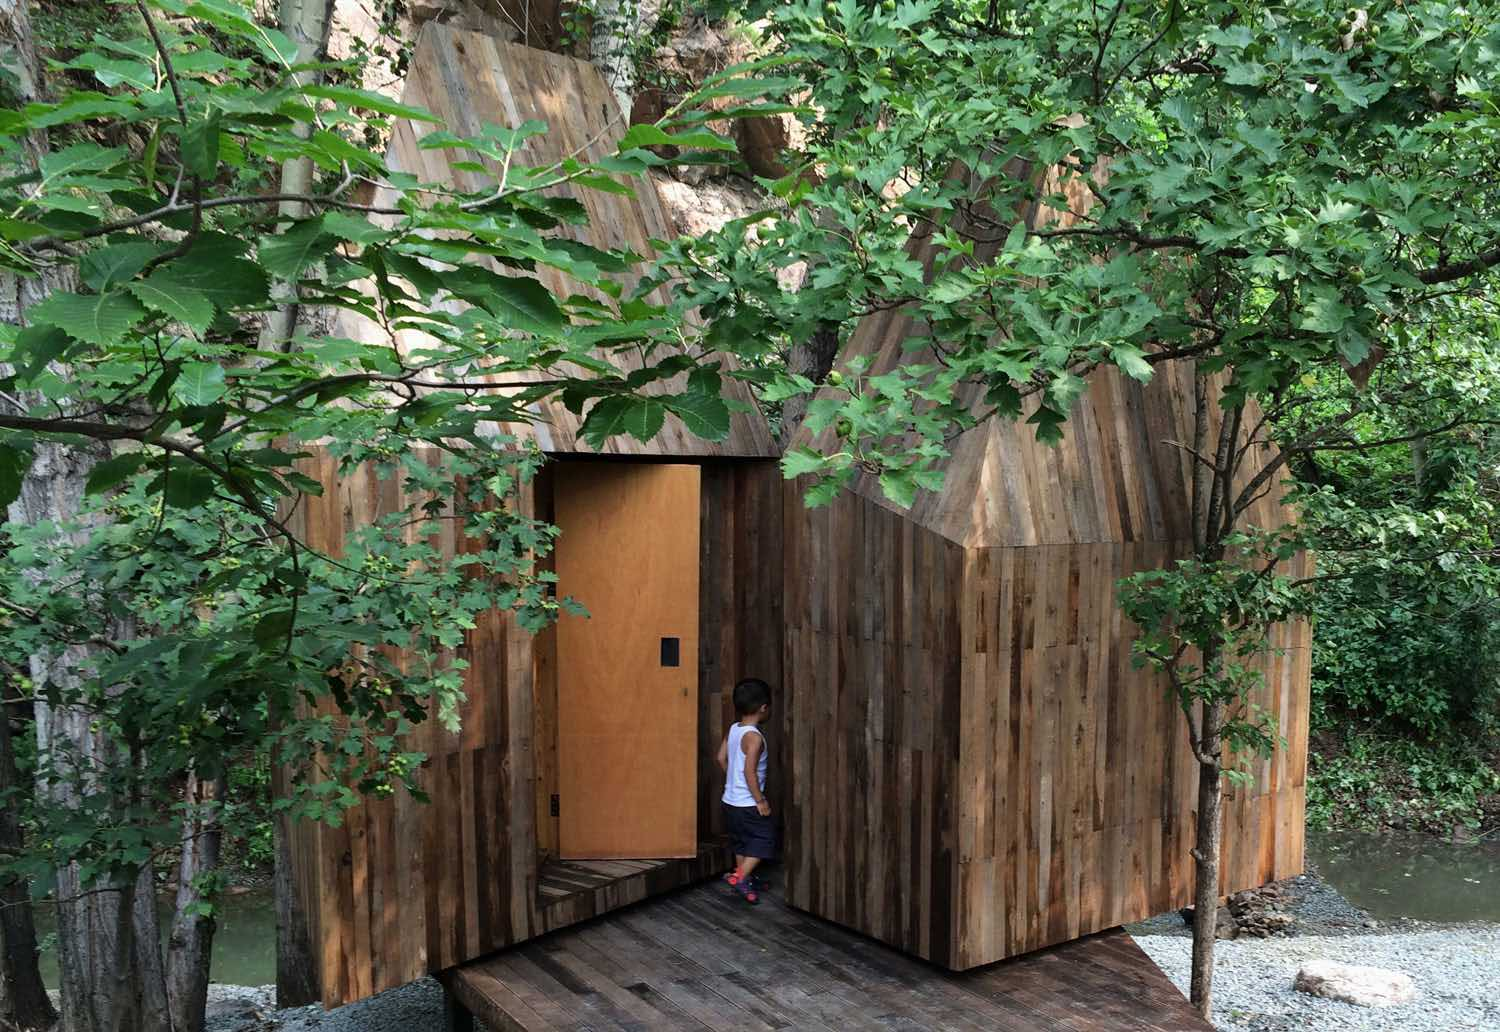 Architecture-Wee-Studio-Treehouse-8